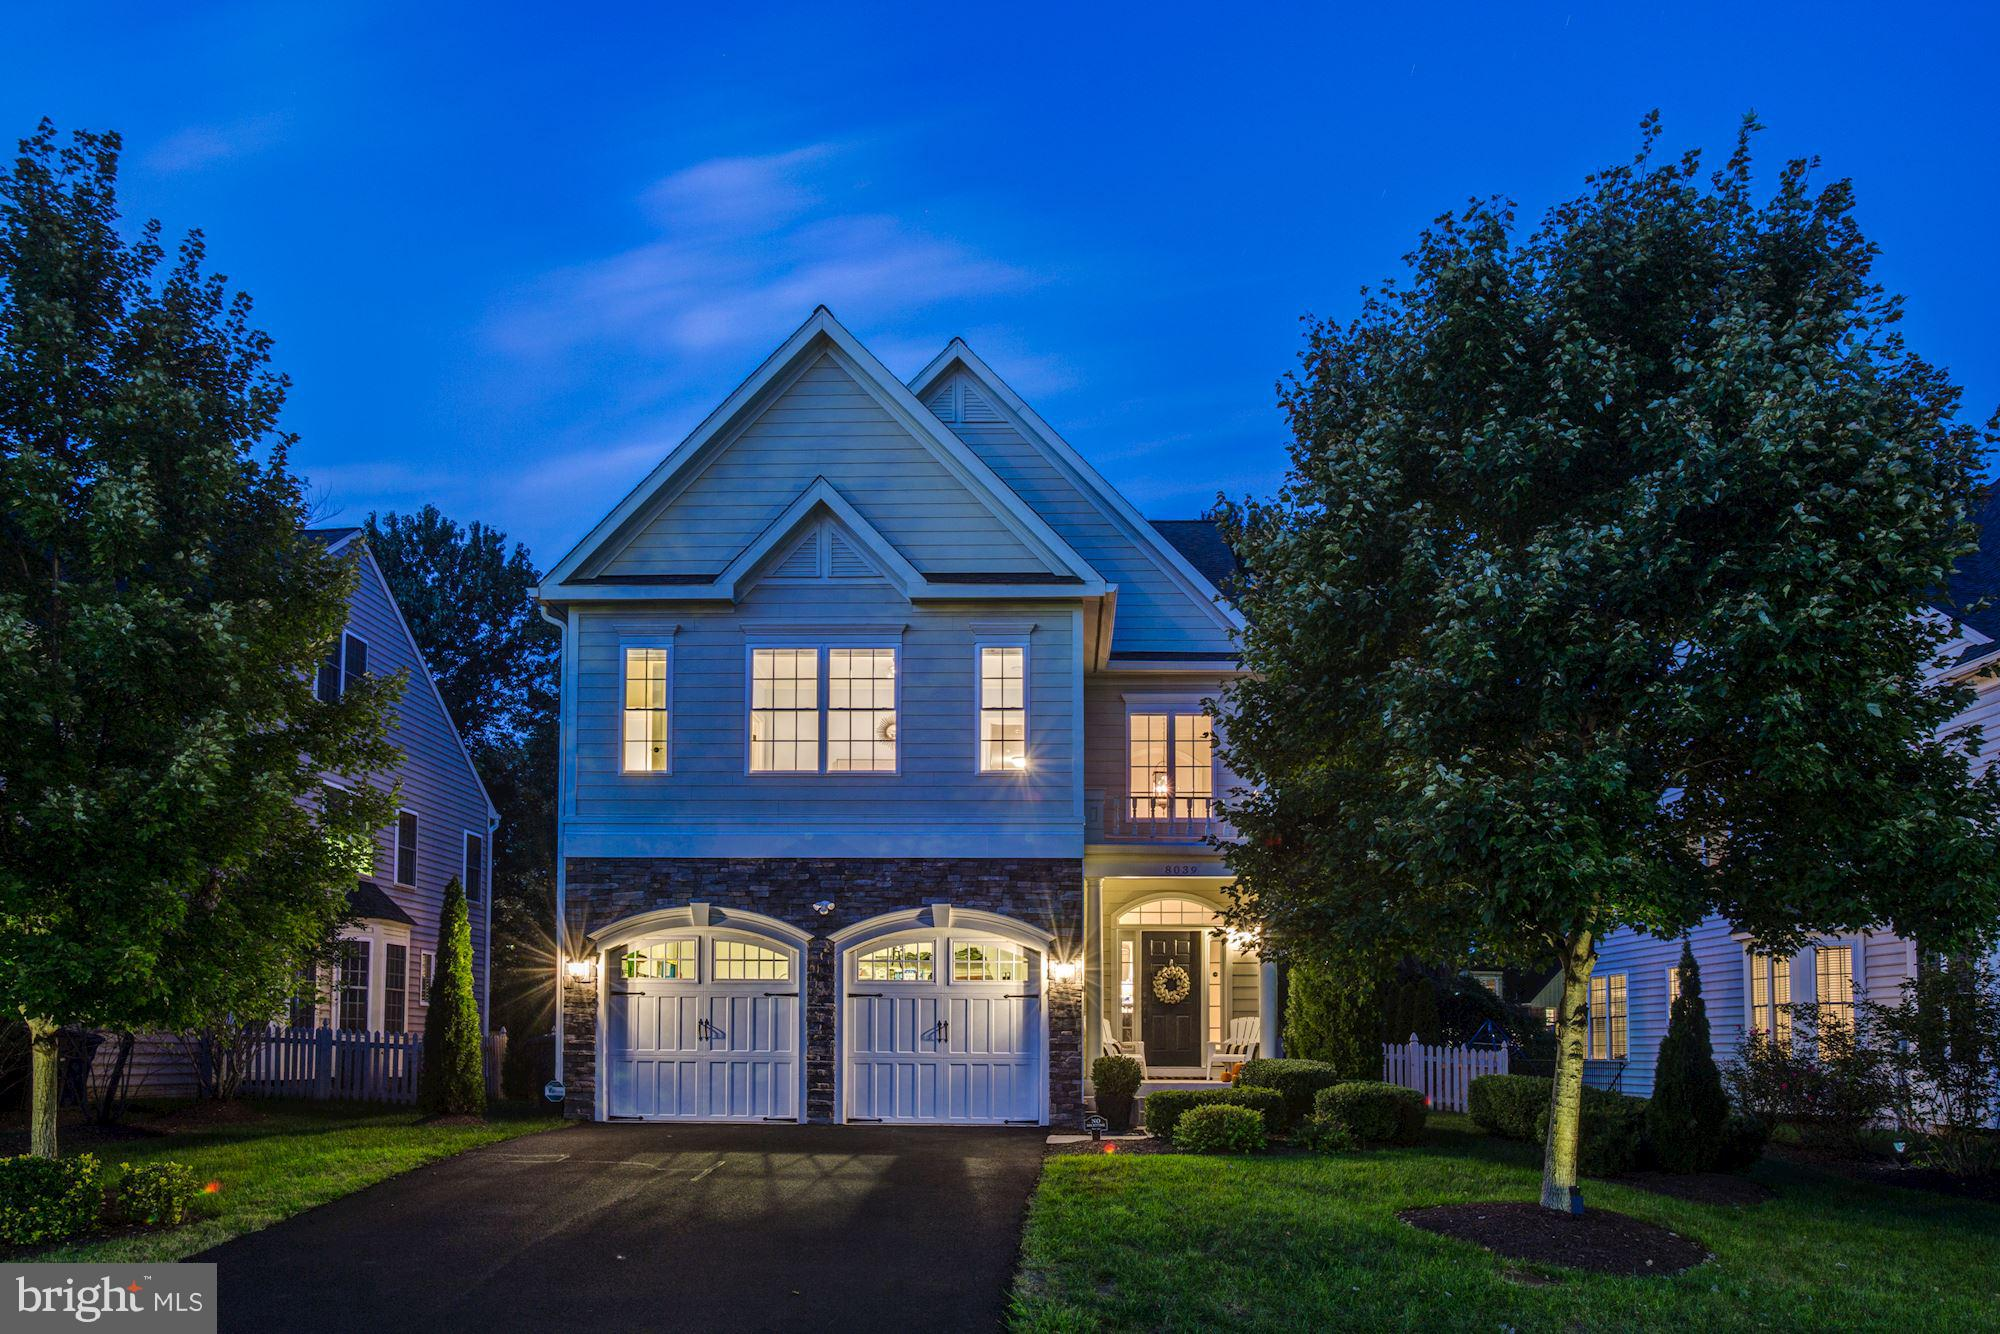 Stunning Craftsman on sought-after street in Ft Hunt, minutes to historic Old Town. Light-filled 5 BD/5.5 BA w/4,200 sqft, open floorplan,10+ ft ceilings, hdwd floors & finished basement. Built in 2009 & like-new w/sprinkler system, generator, moldings, window treatments, premium lighting, mature landscaping & freshly painted.Walk a block to Mt Vernon Pool/Shops.Top rated Waynewood school district